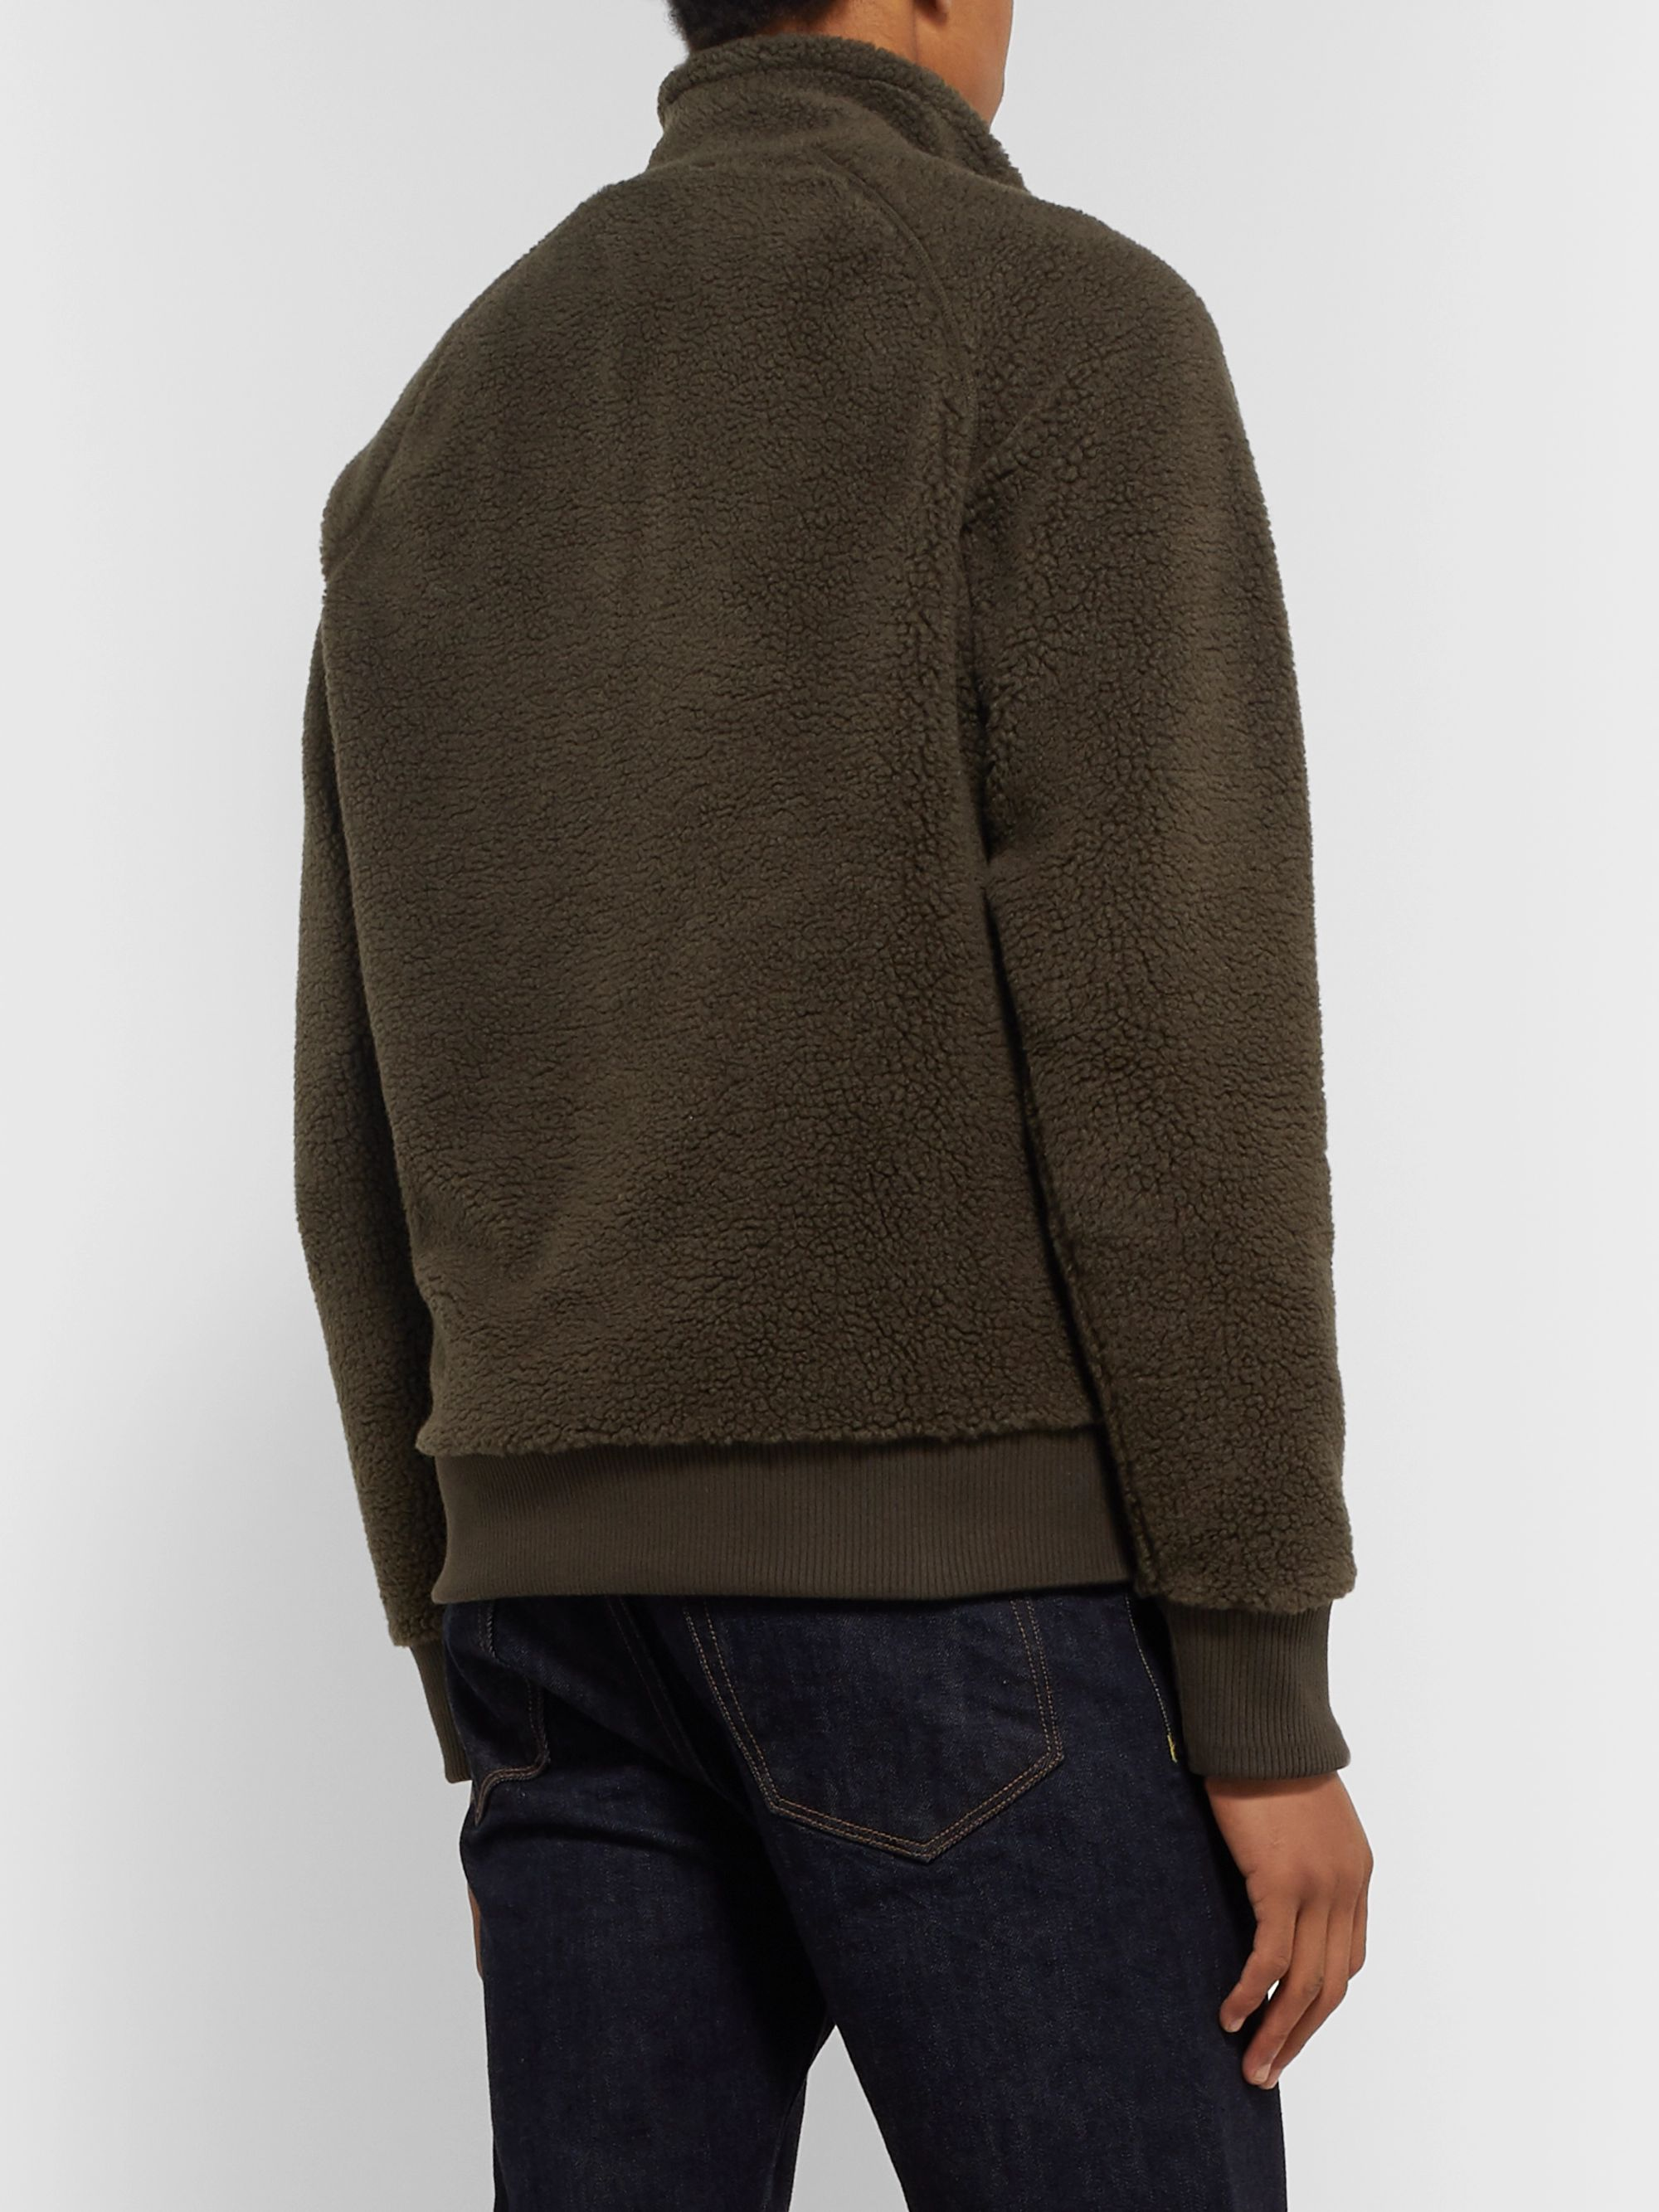 Mr P. Fleece Jacket